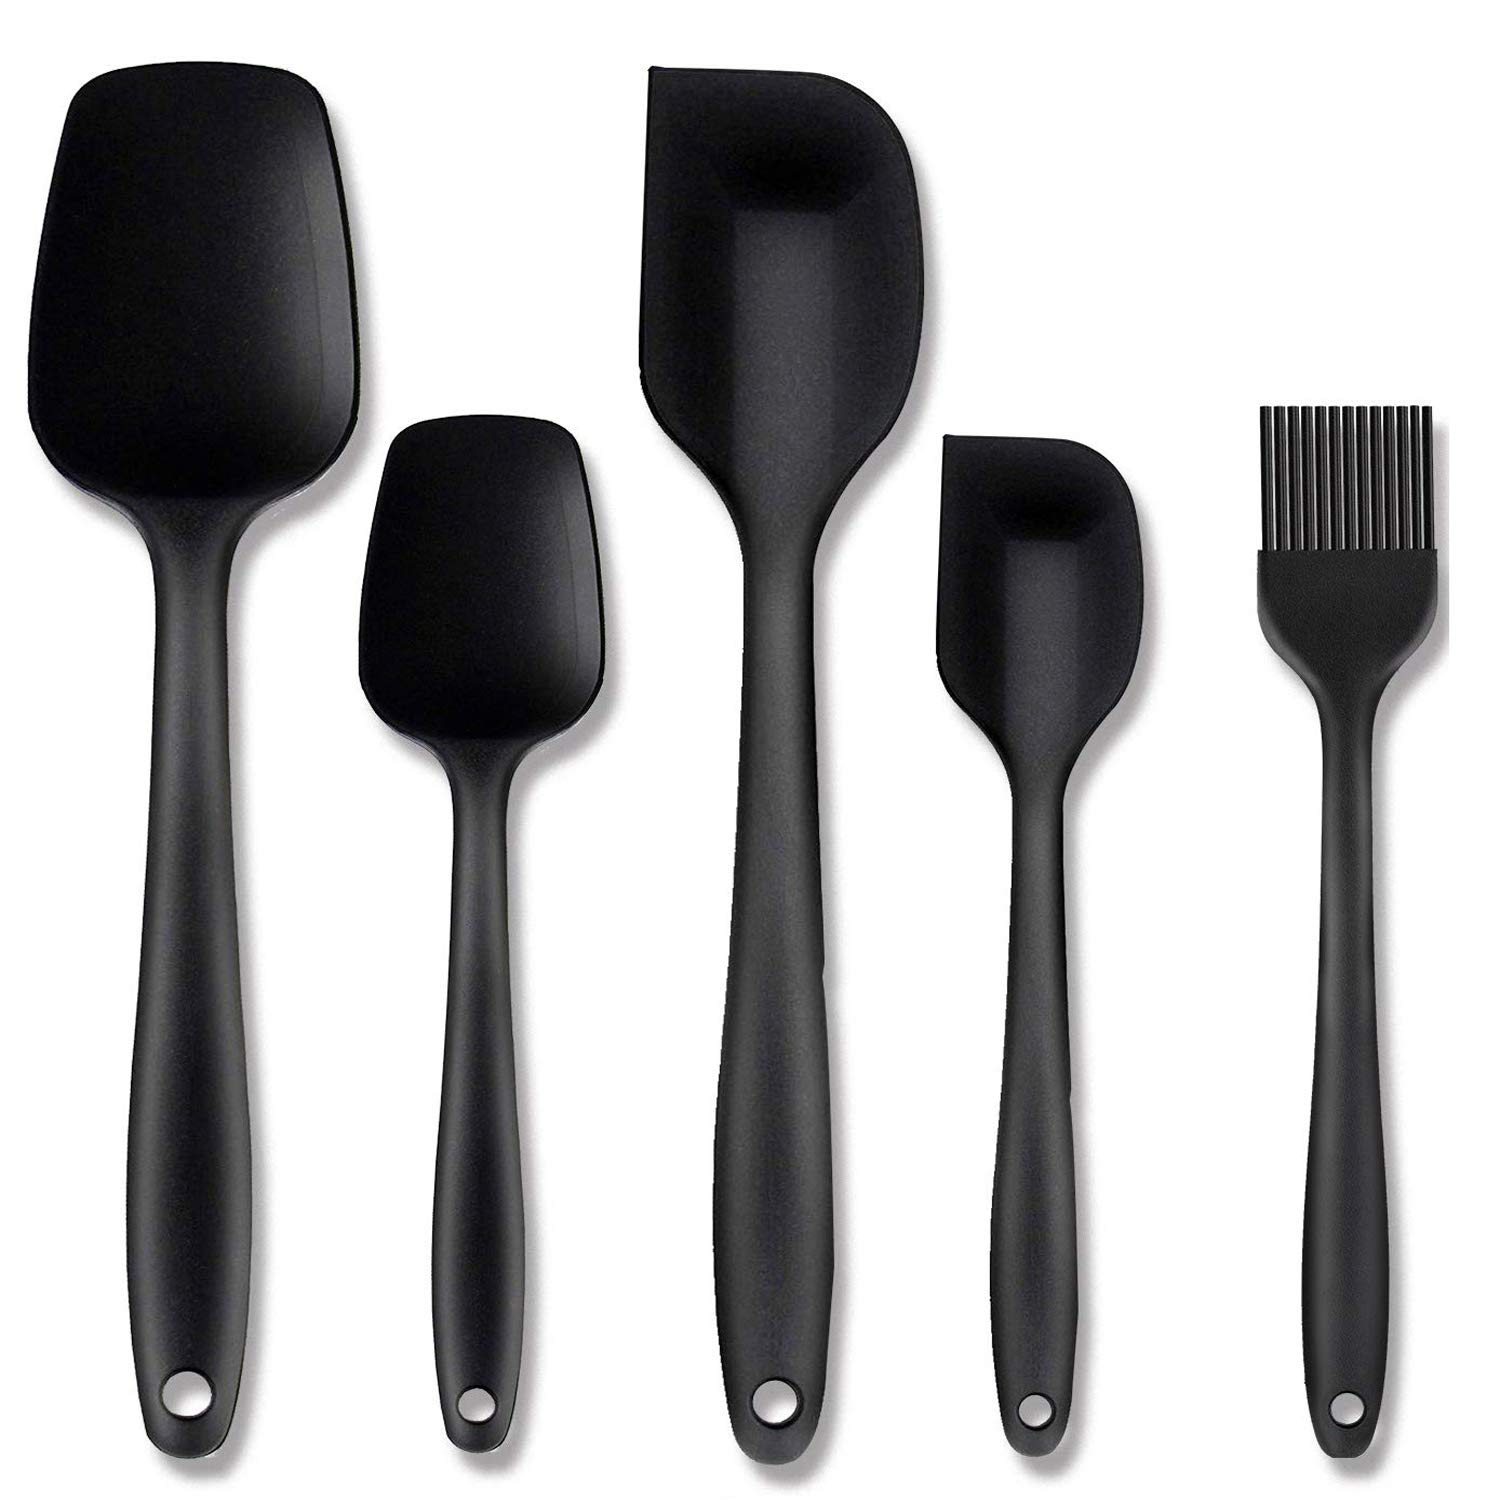 Benss Silicone Spatula Set Silicone Kitchen Utensils Set Silicone Brush Heat Resistant Food Grade Non-Stick, for Cooking Baking Cake Decorating, Rubber Spatula Turner Spoonula, by Benss, Set of 5